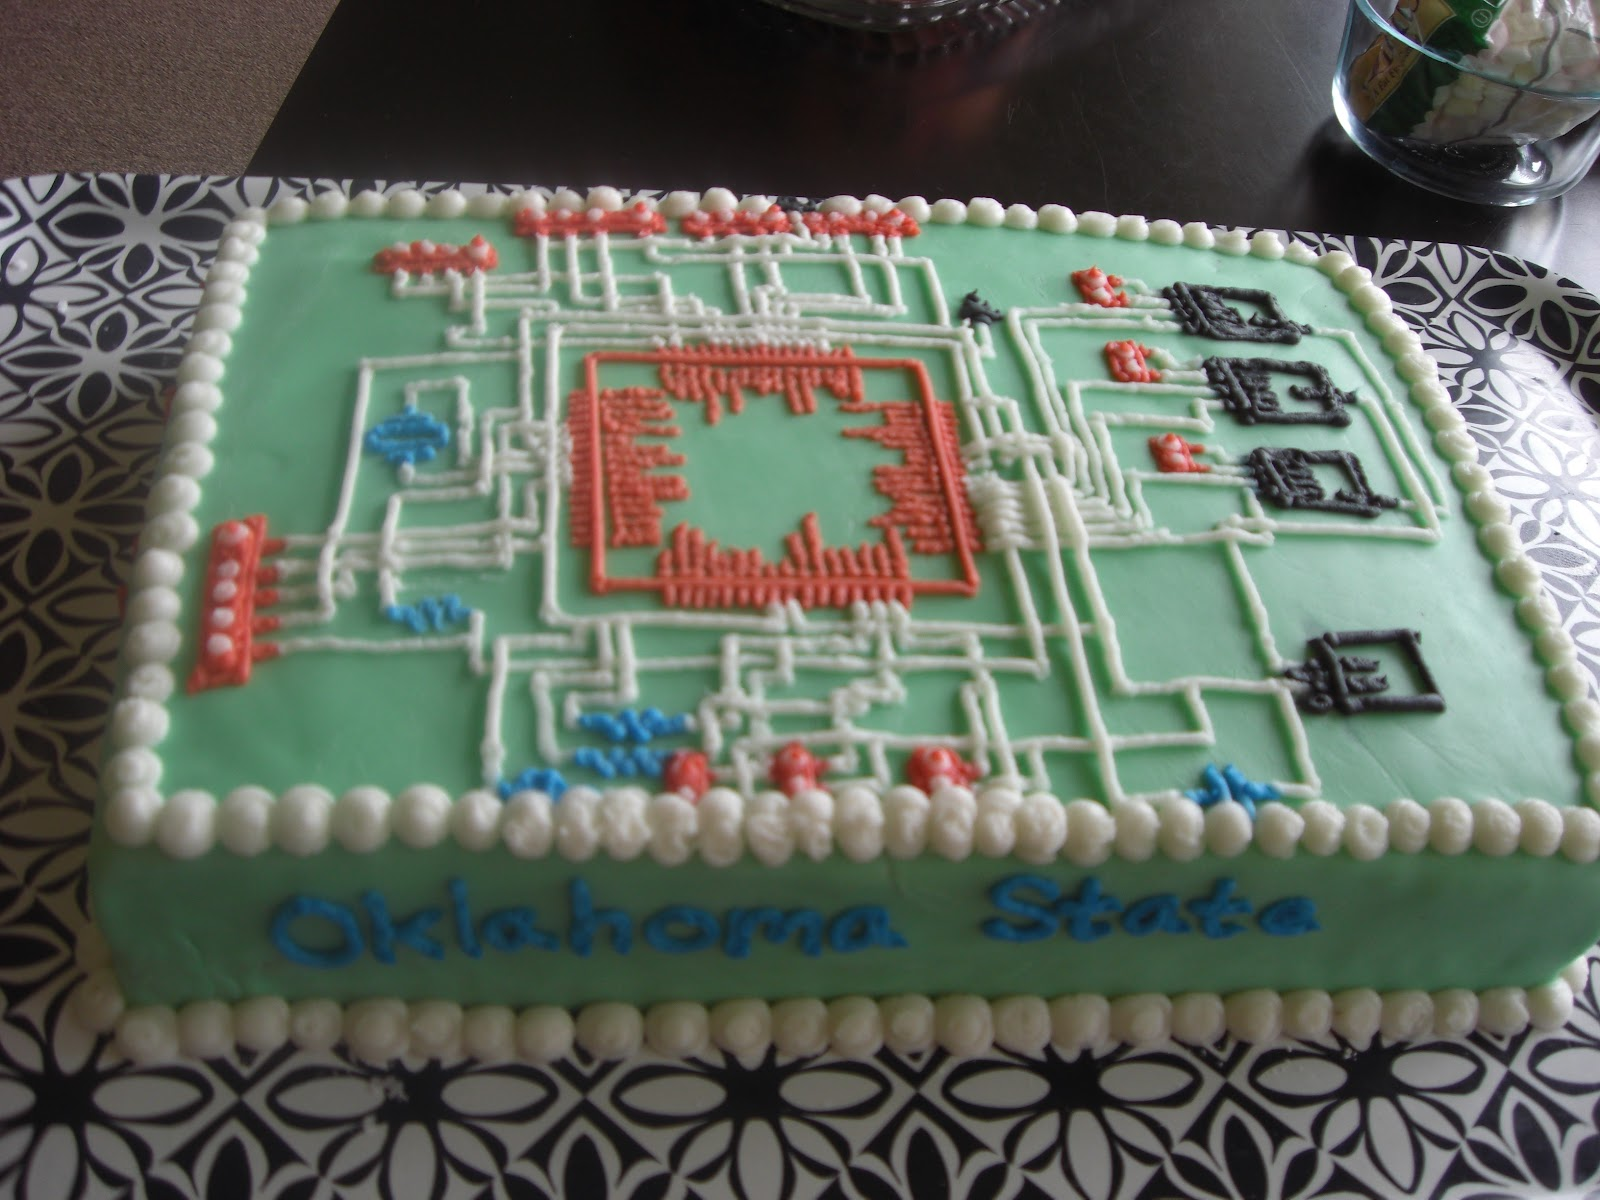 Electrical Engineer Cake Design : Sarah Jones Cakes!: Graduation Cakes